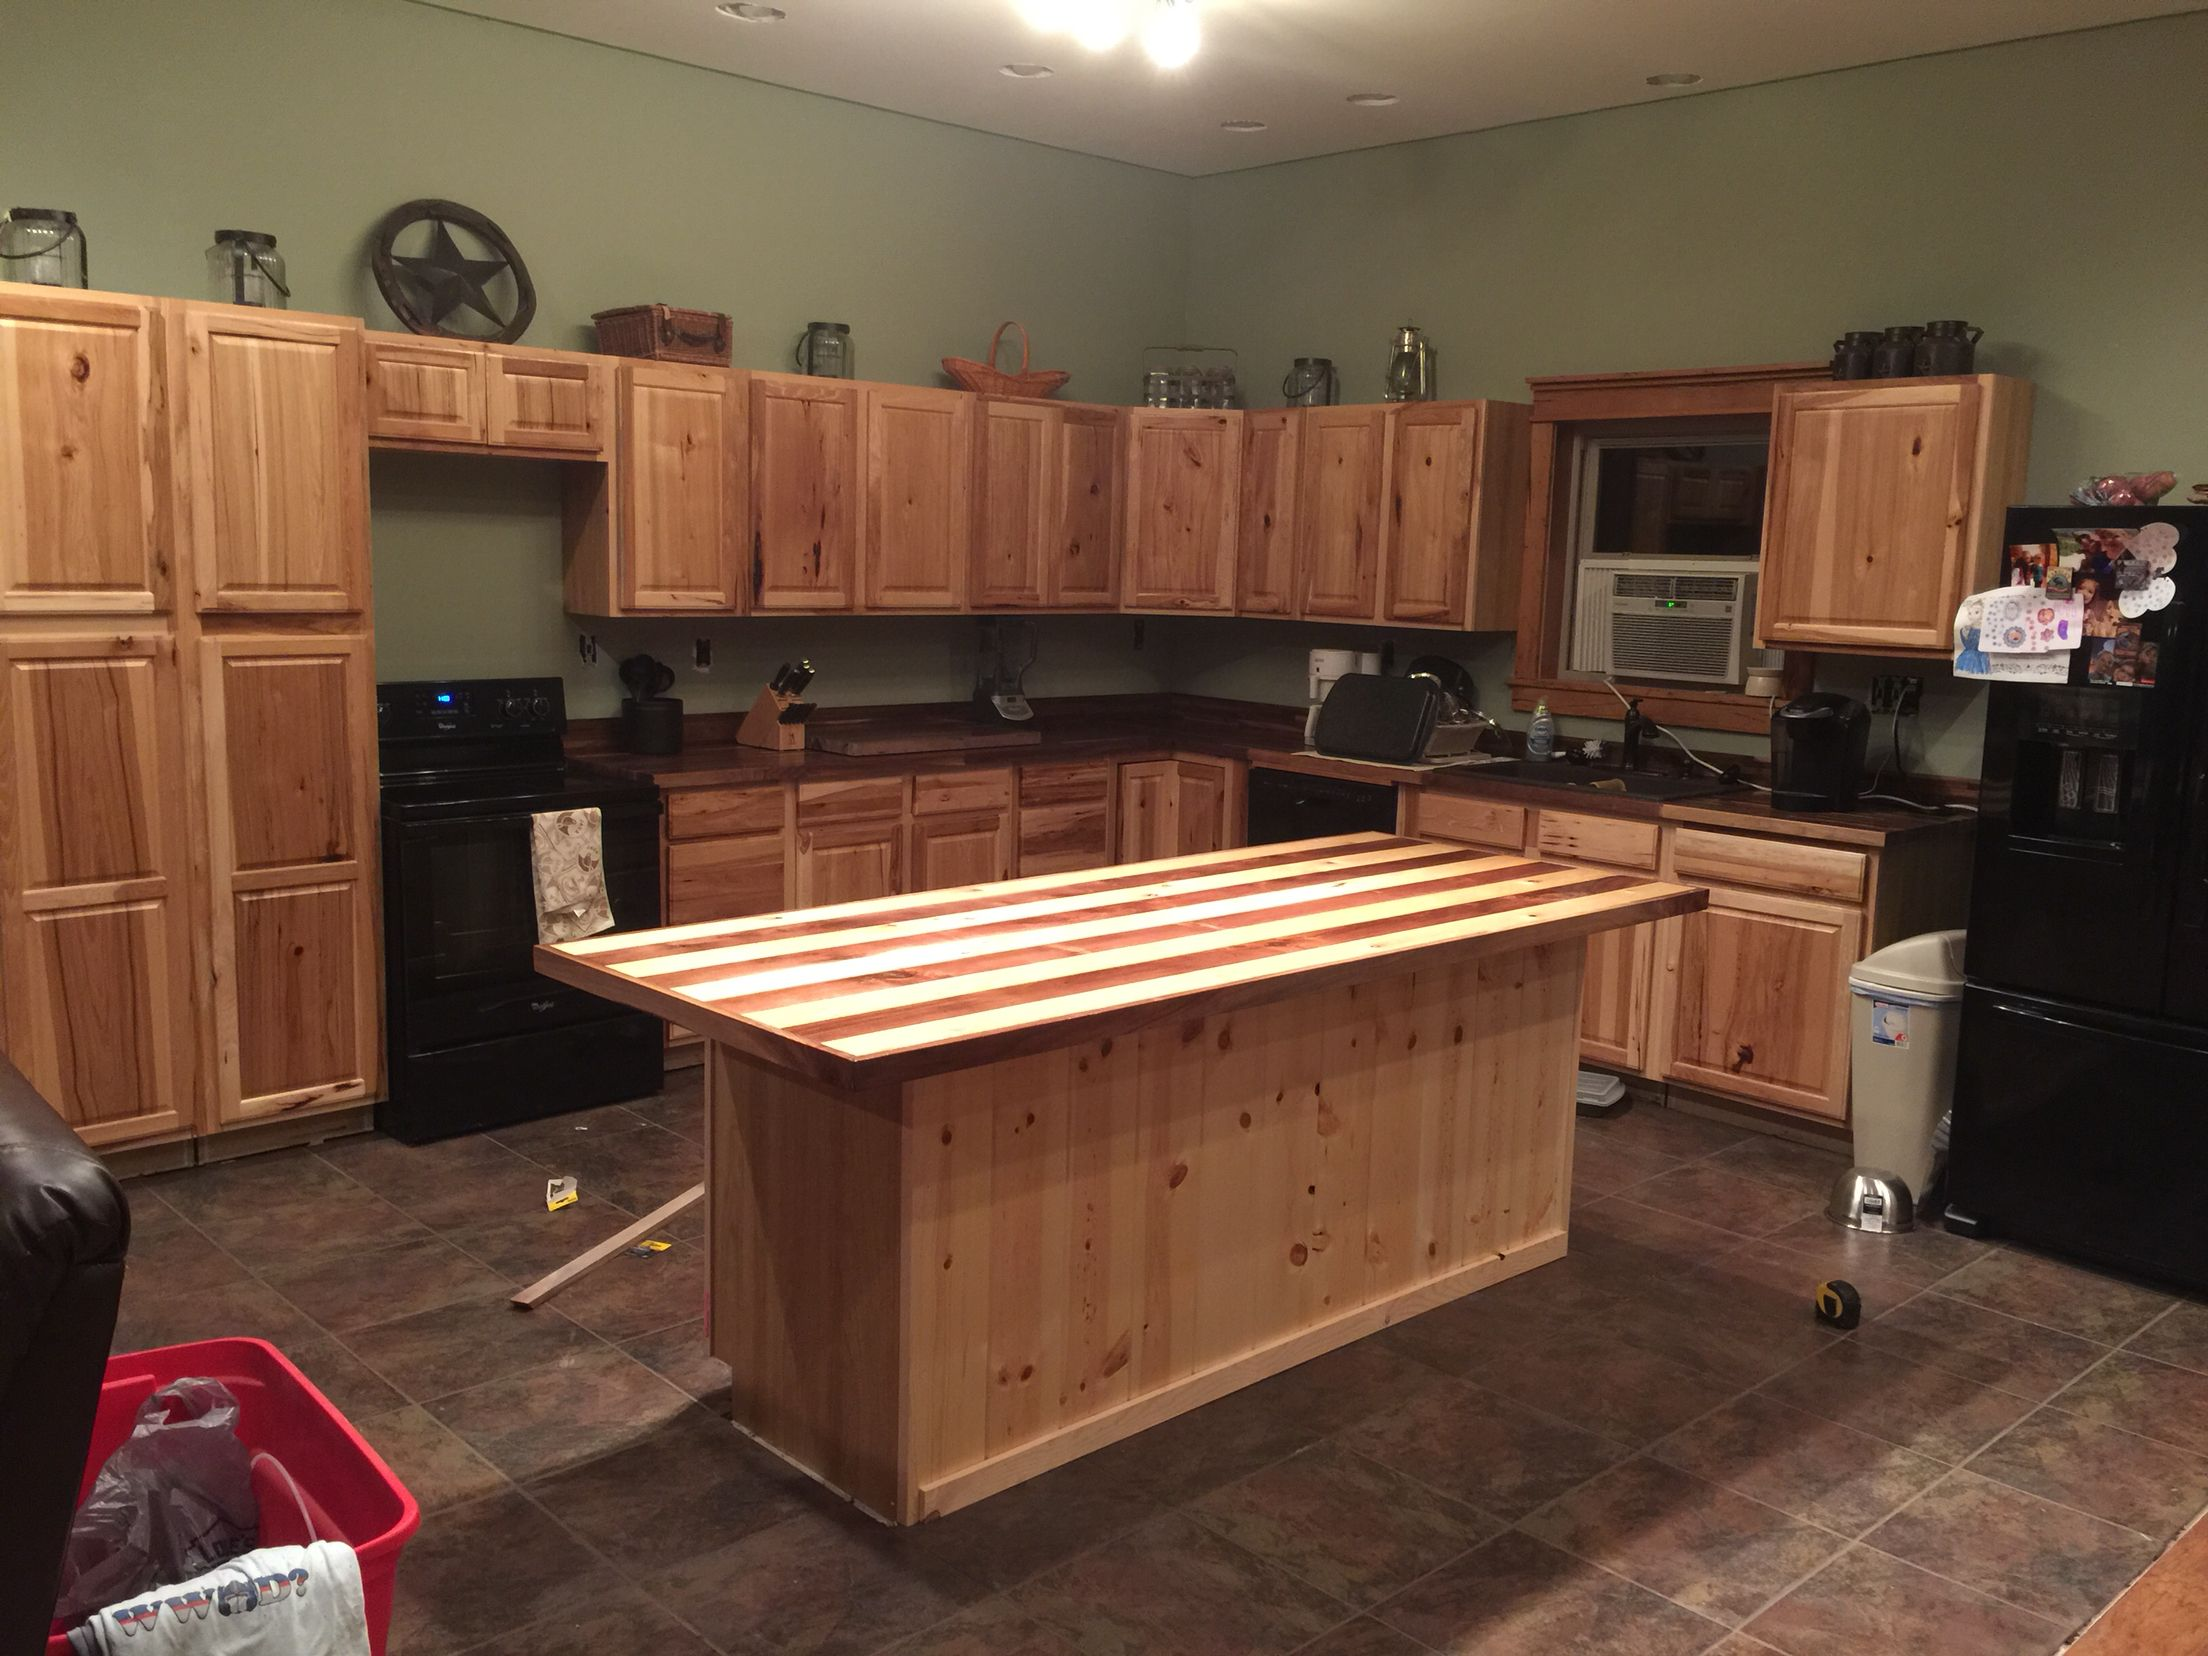 Kitchen Overview Hickory Cabinets From Lowes Walnut Butcher Block Countertop From Lumber